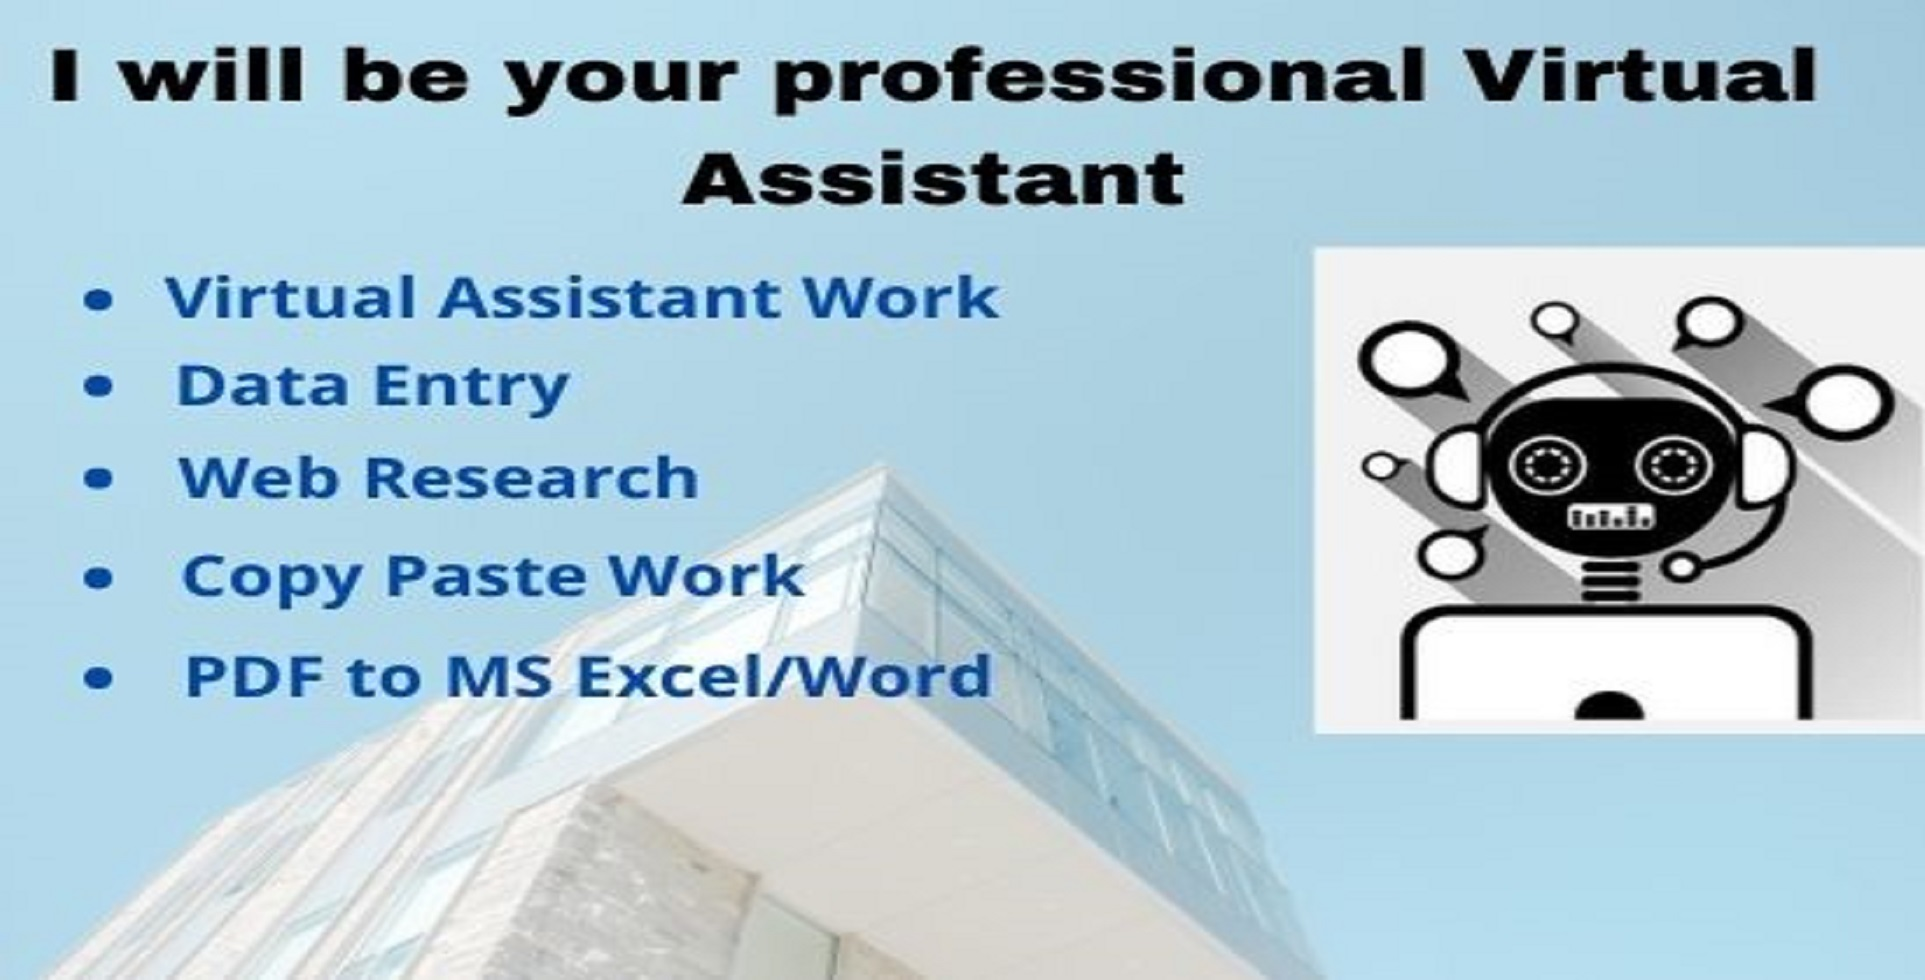 I will be your best professional and reliable Virtual Assistant for any kind of tasks.